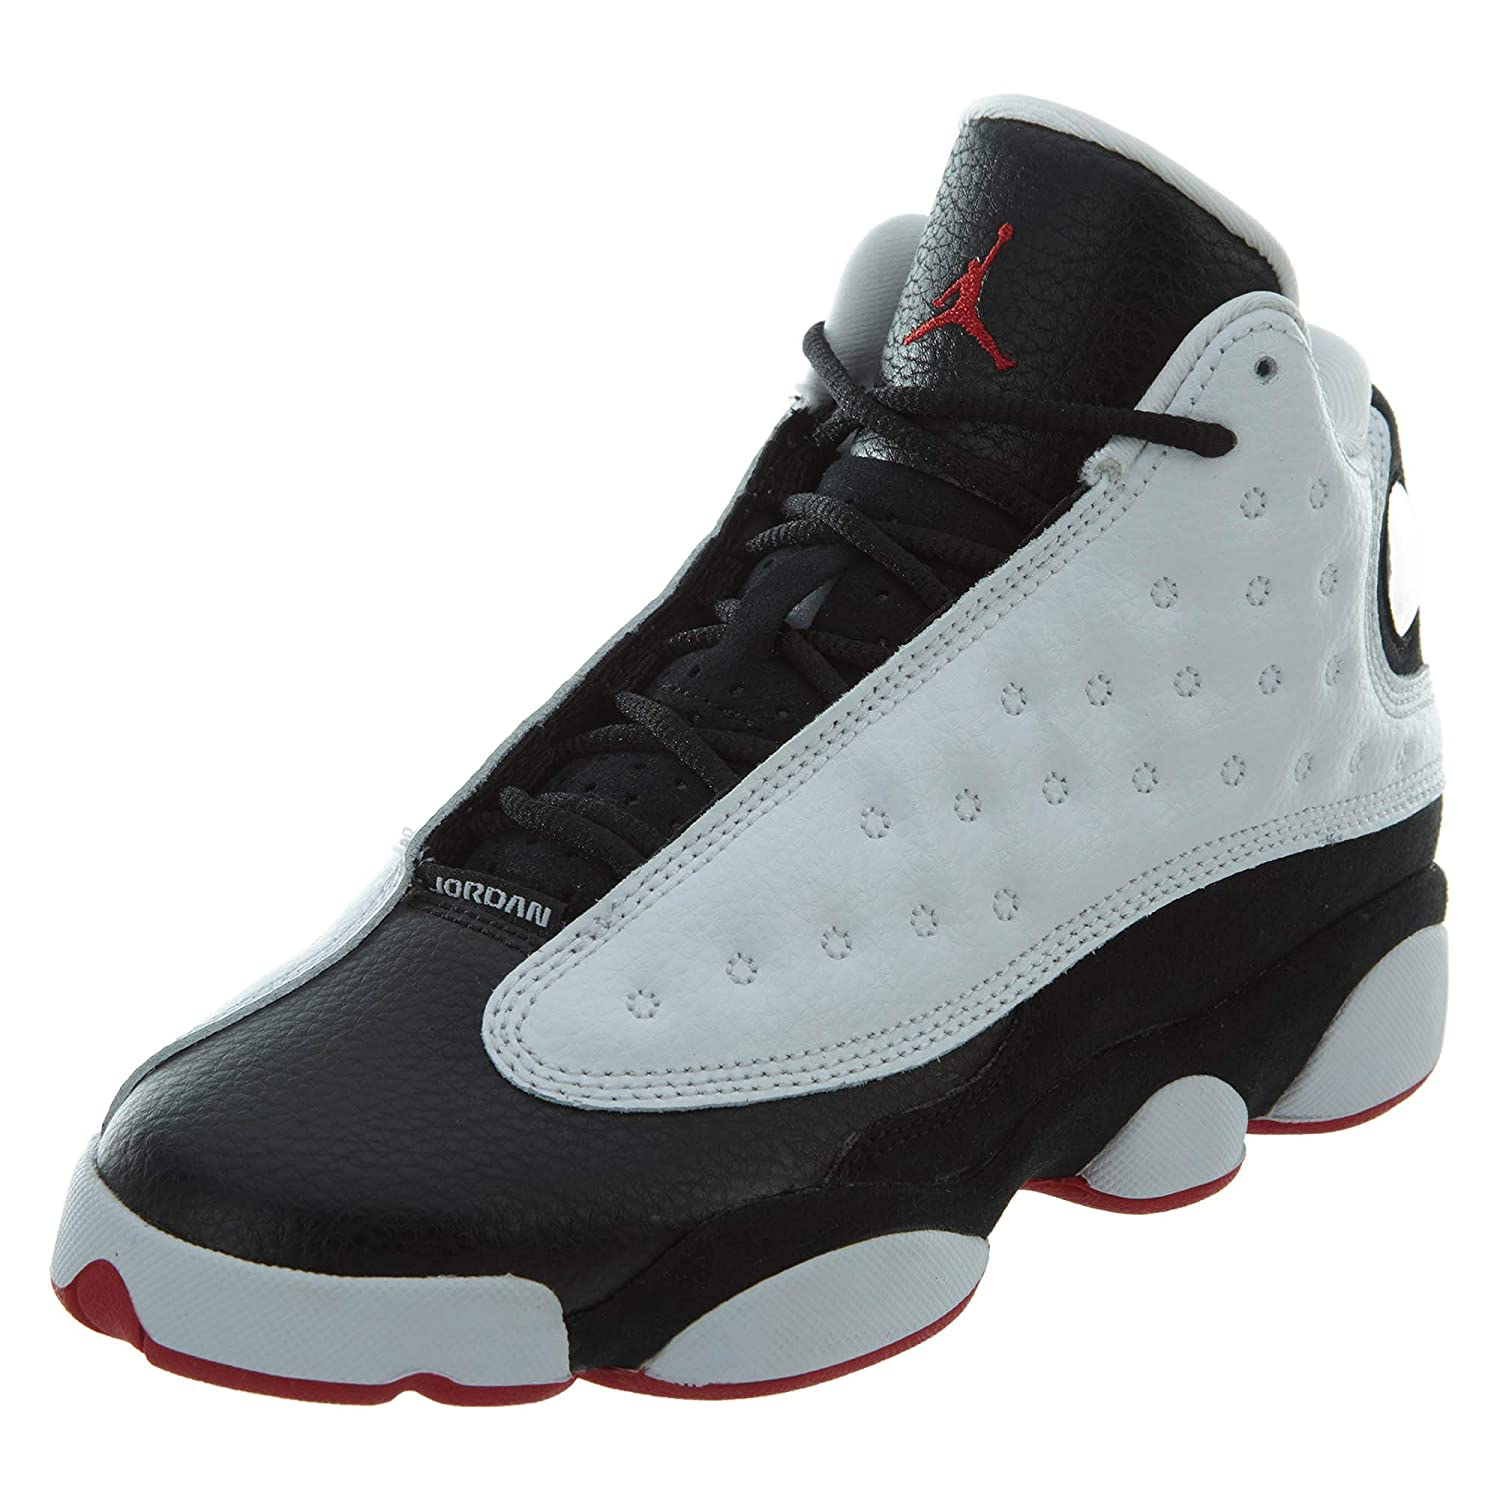 save off da263 3afef Jordan Nike Air 13 Retro Kids BG He Got Game White/Black/True Red  884129-104 (Size: 6.5Y)